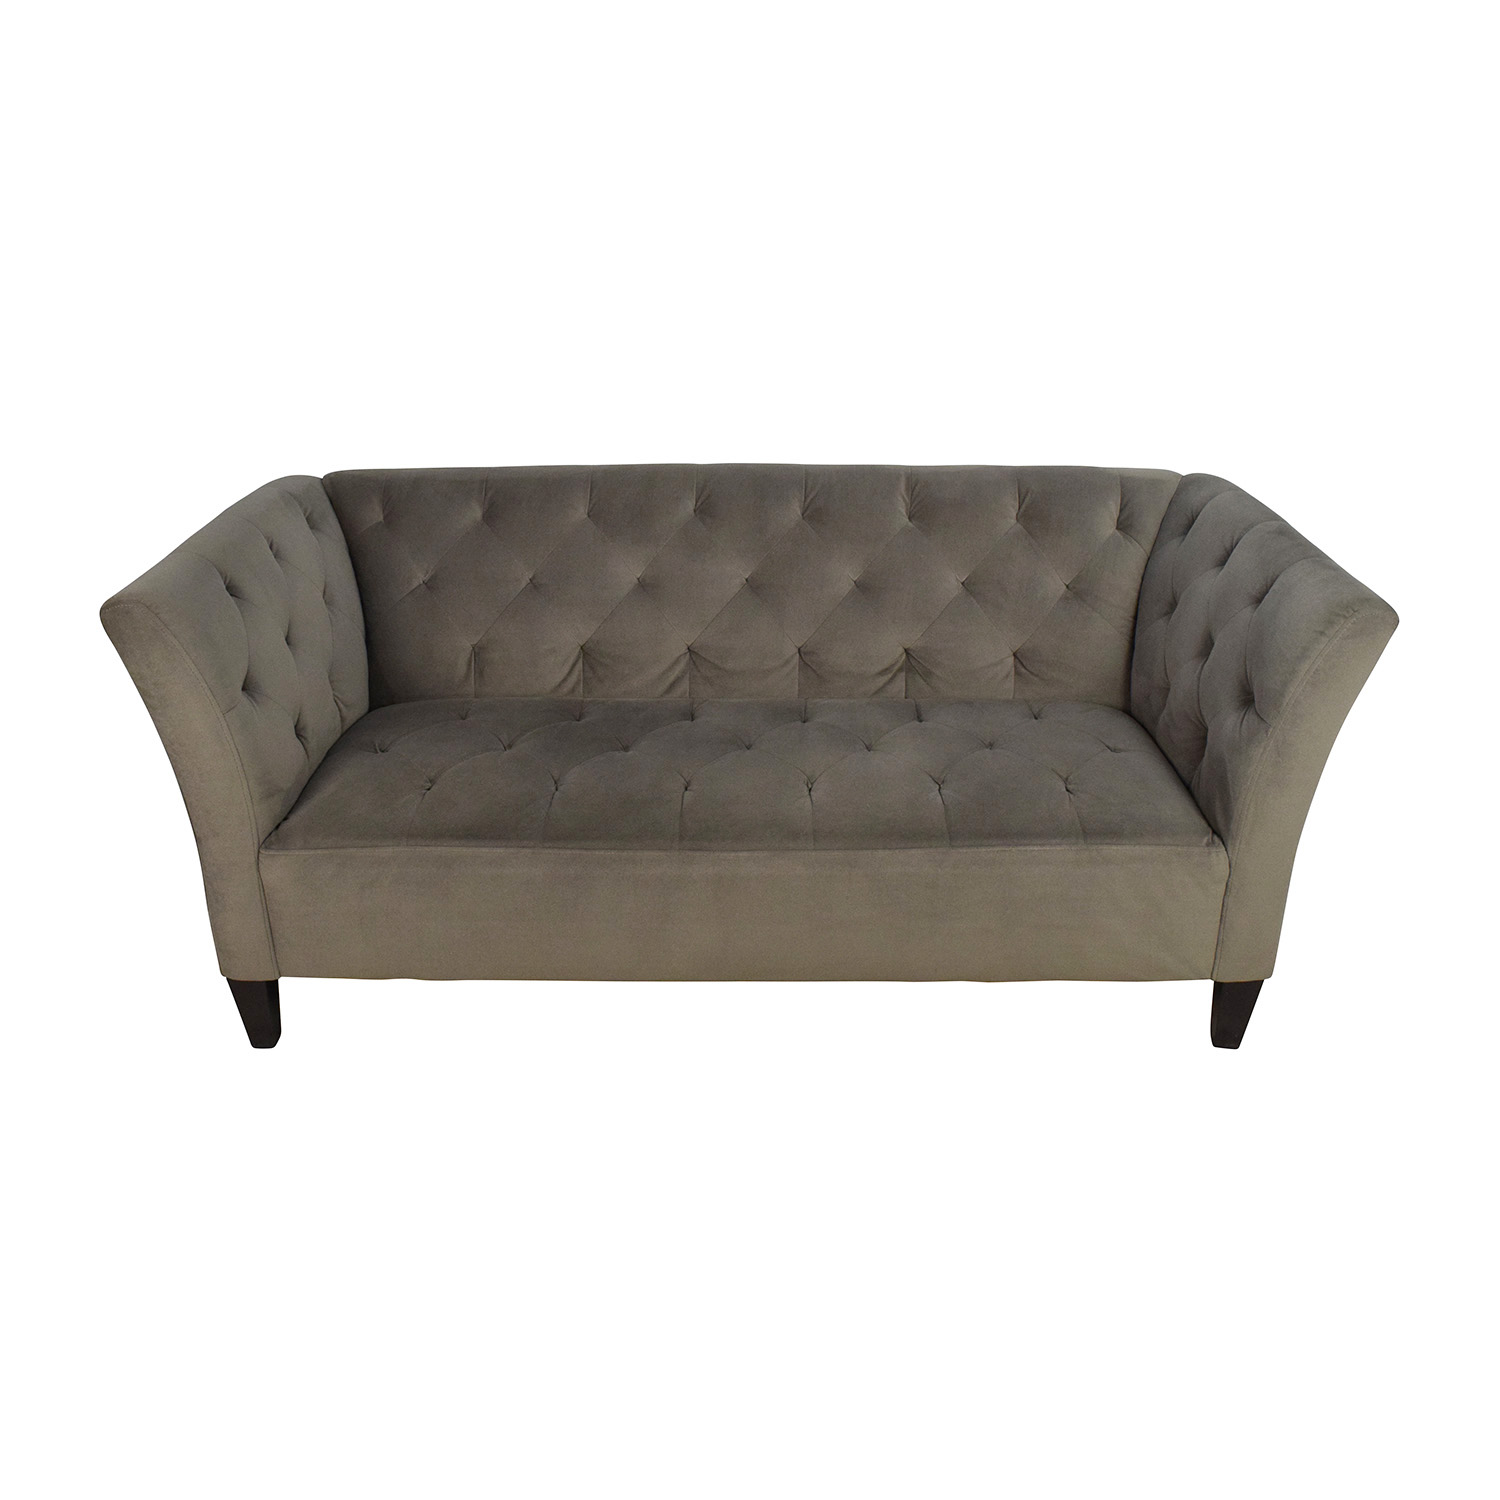 Used Tufted Sofa Novogratz Vintage Tufted Sofa Sleeper Ii Multiple Colors Thesofa